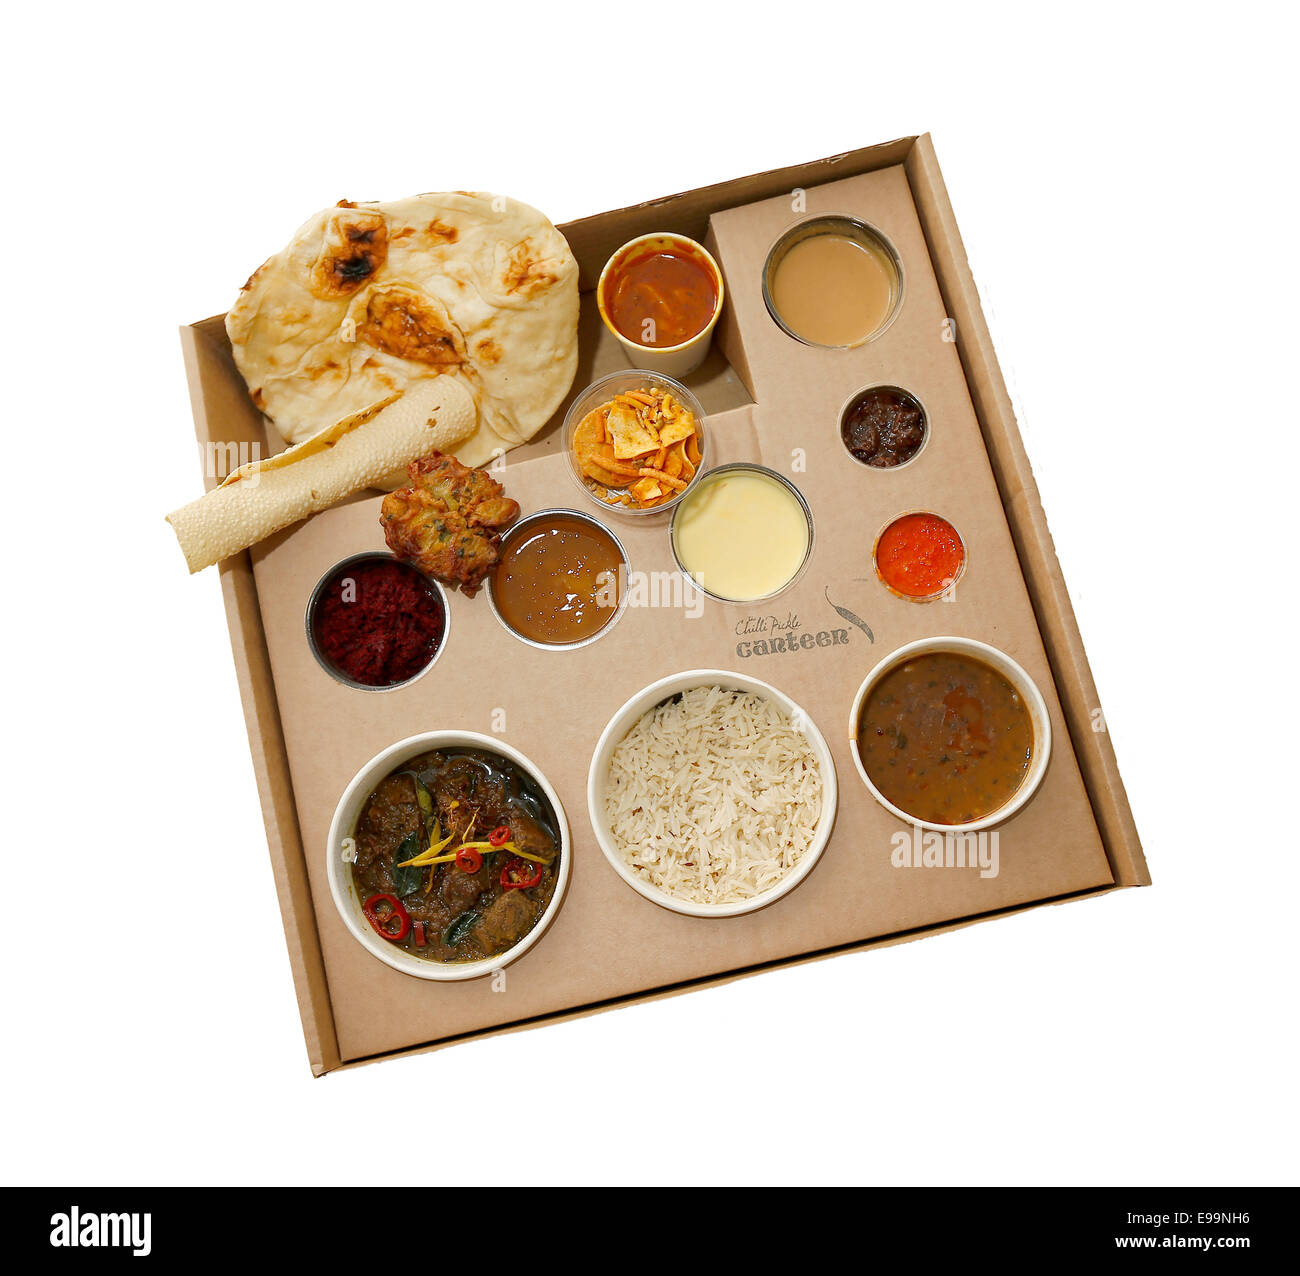 Takeaway Indian Thali Meal from The Chilli Pickle Canteen in Brighton. - Stock Image